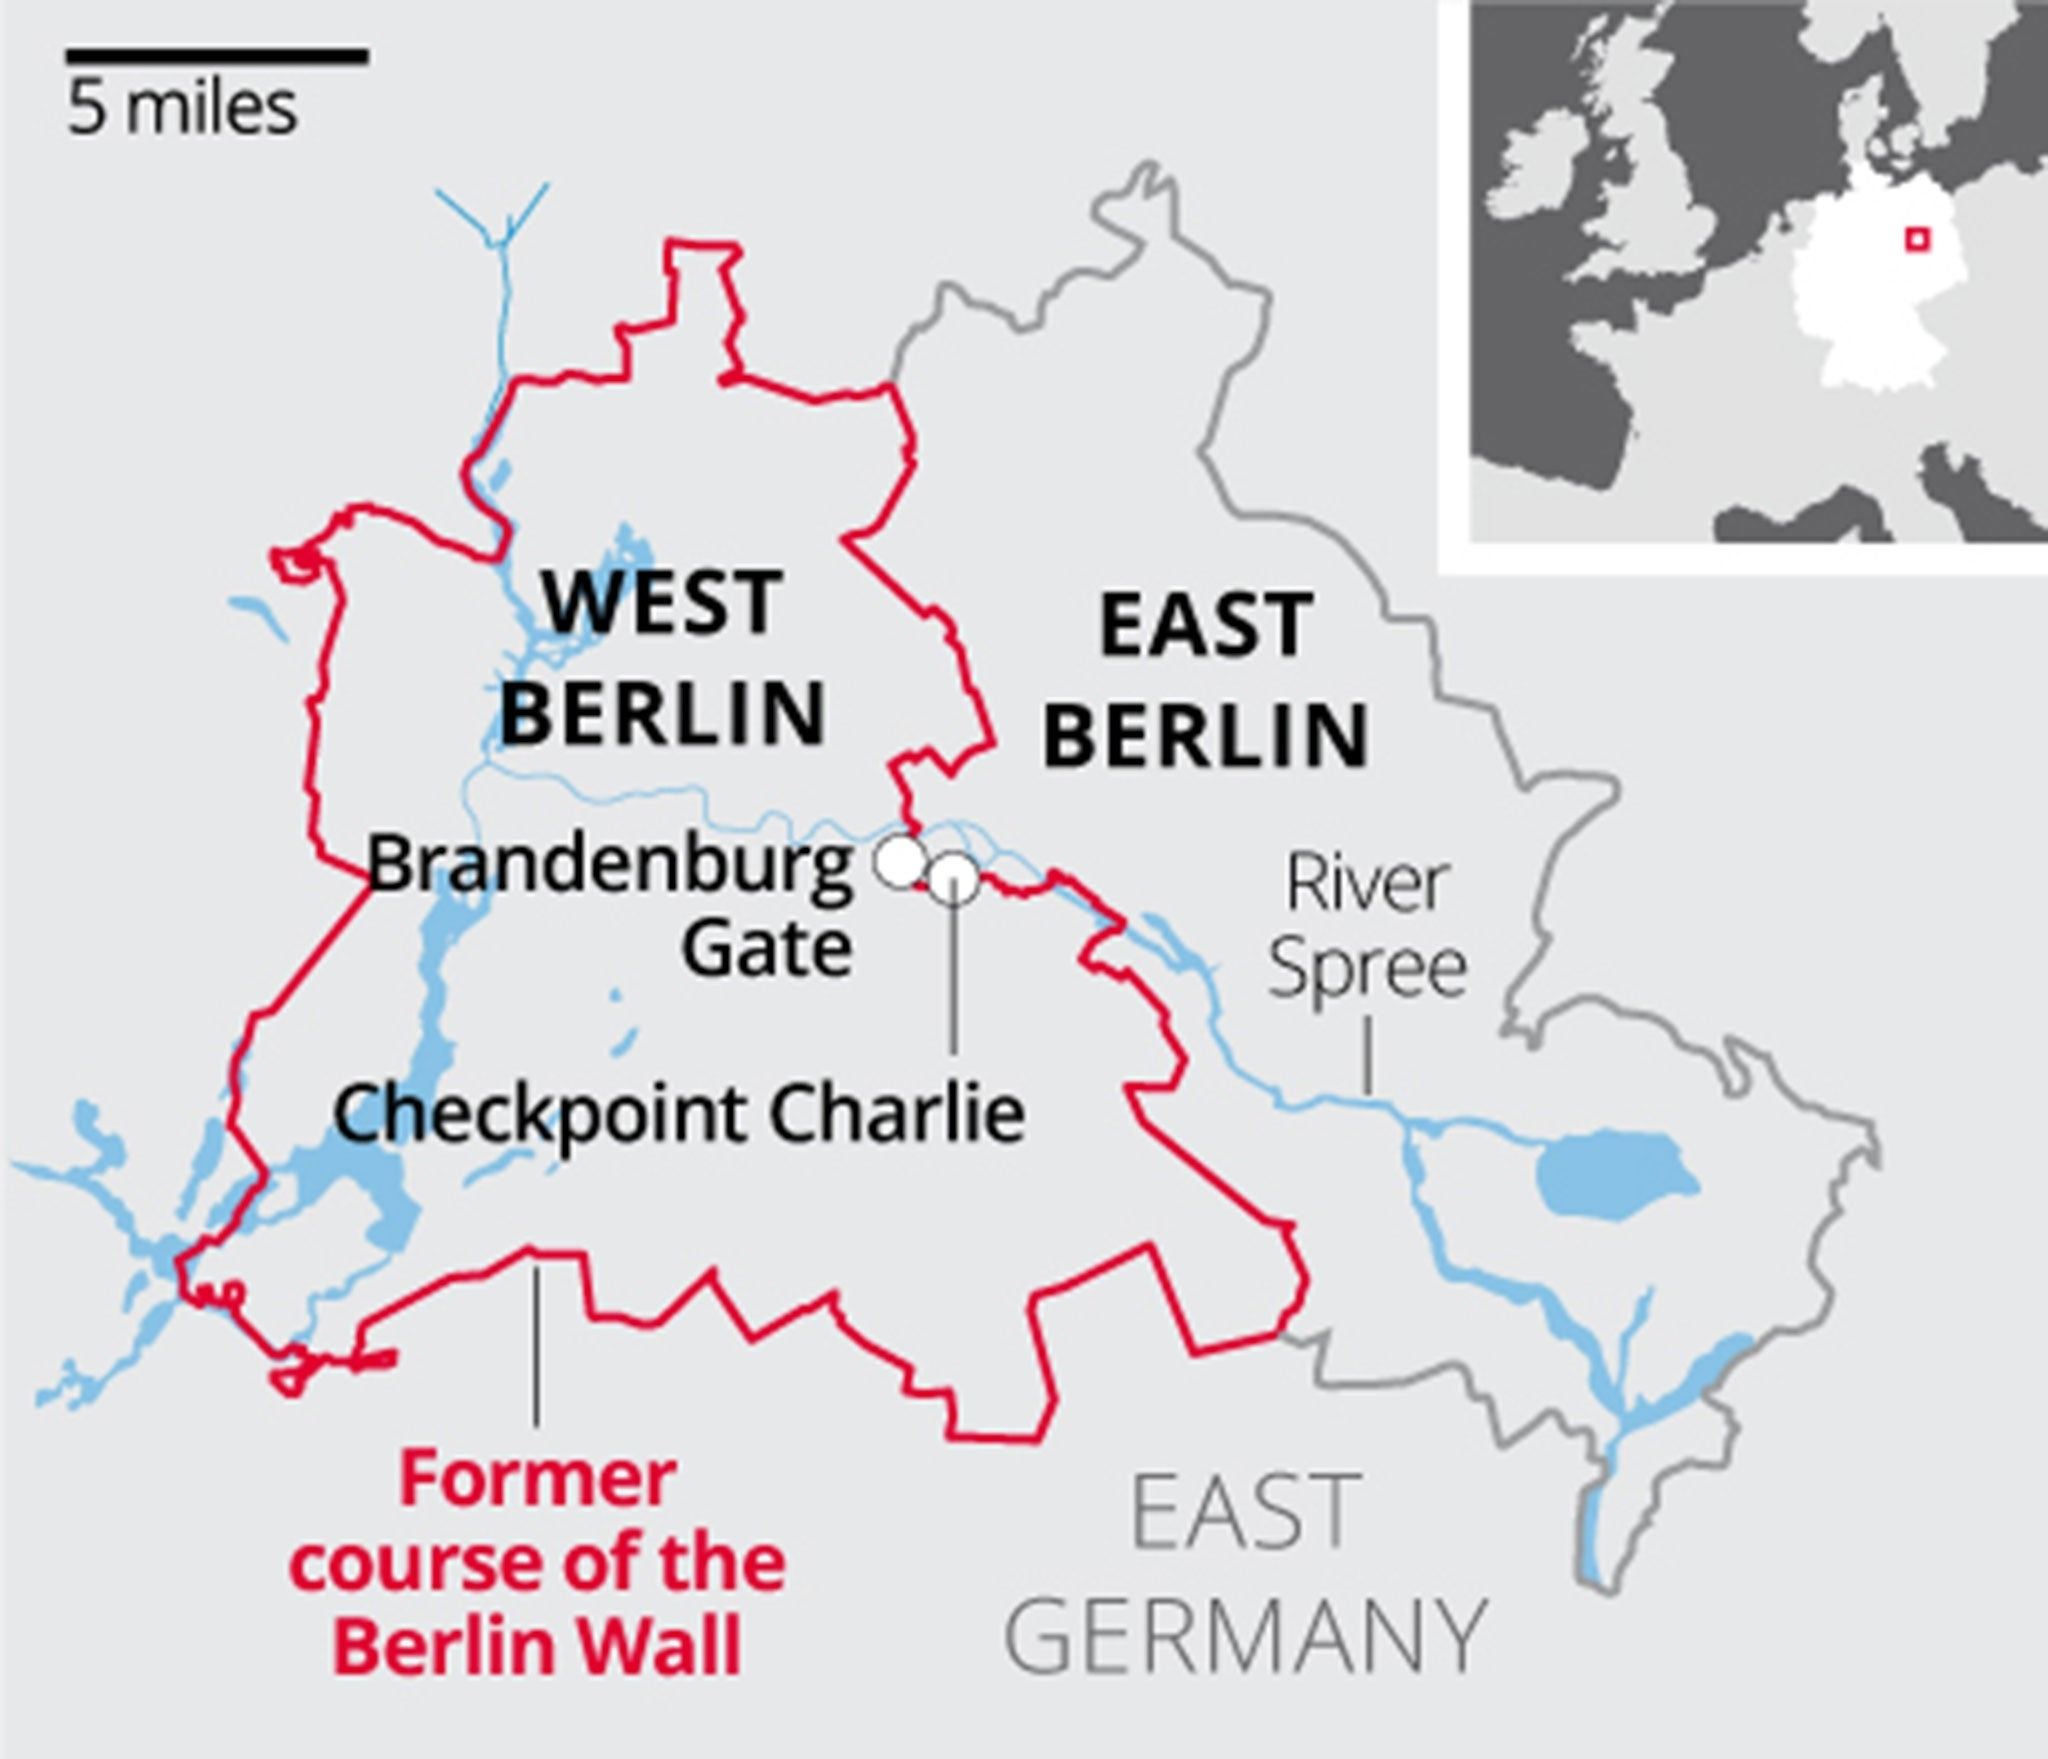 Berlin Wall: What You Need To Know About The Barrier That Divided pertaining to East West Germany Map Berlin Wall